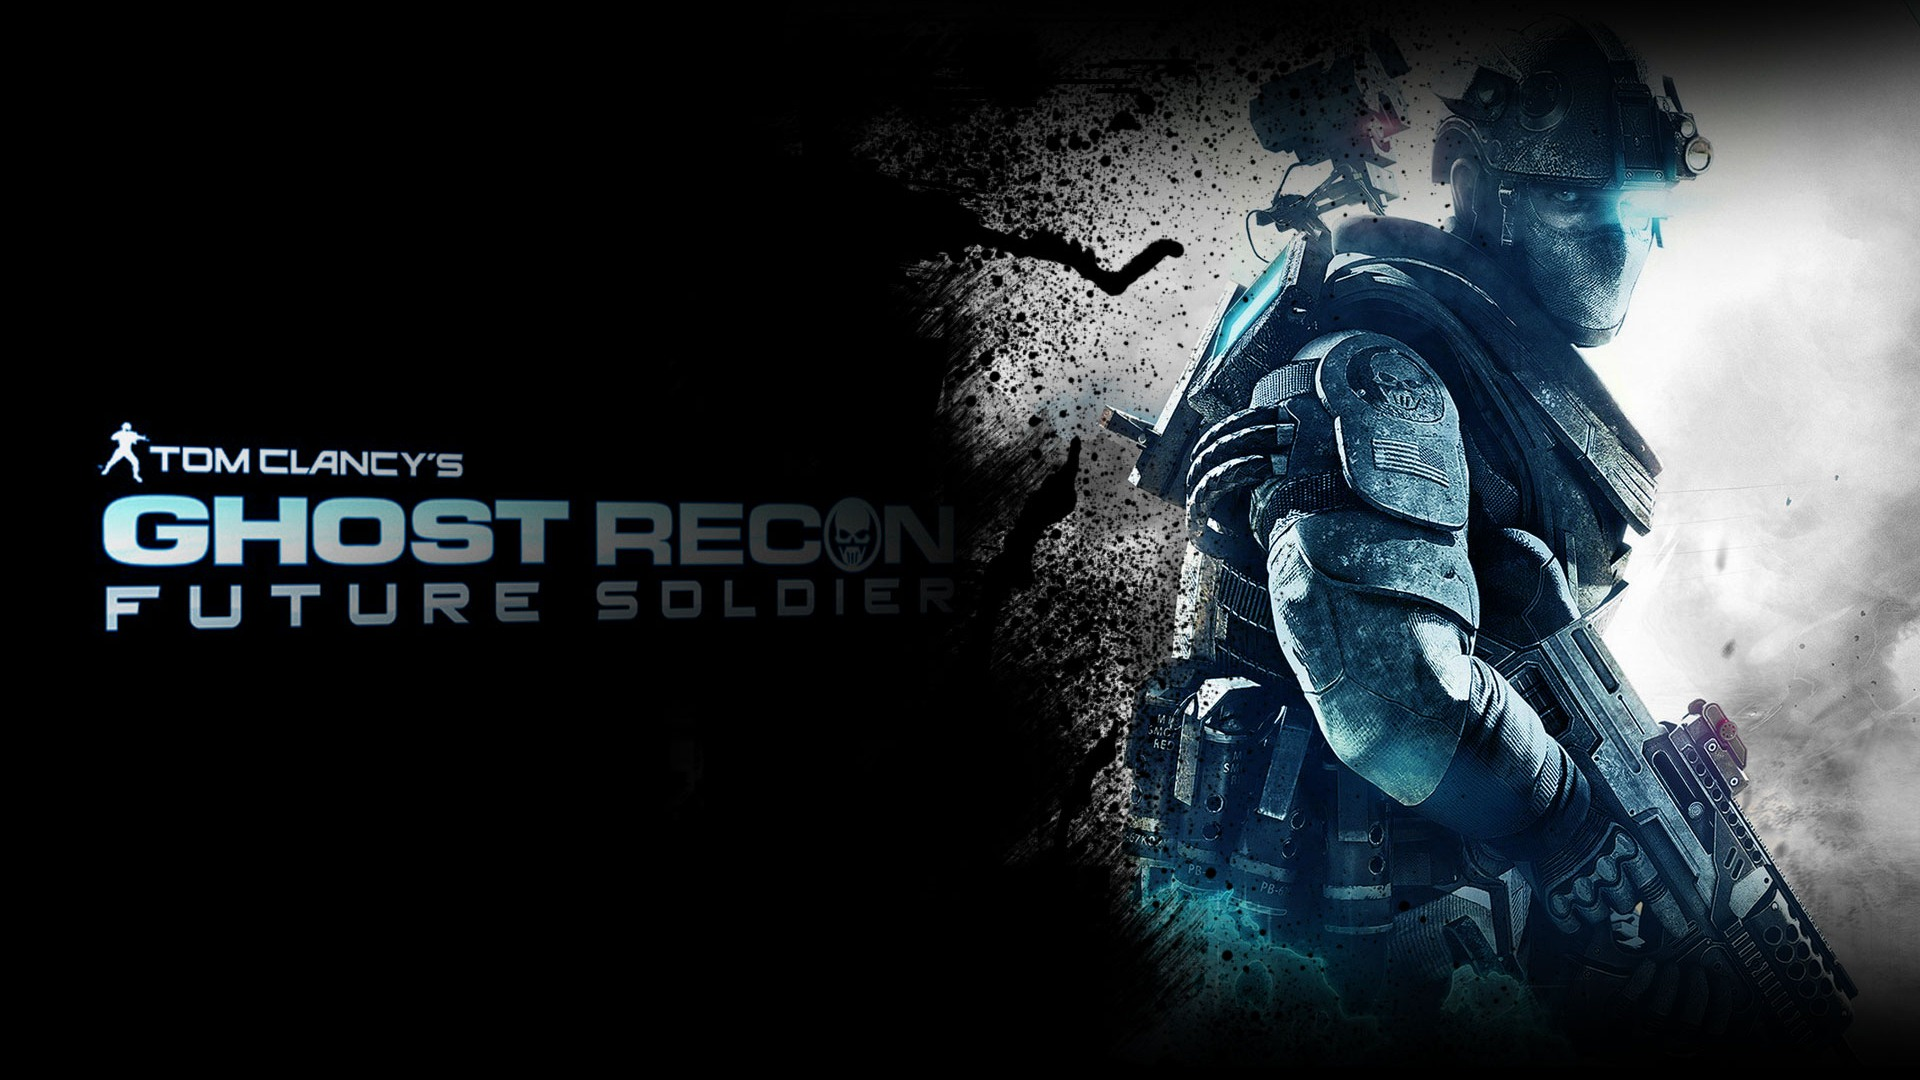 Ghost Recon: Future Soldier HD wallpapers #7 - 1920x1080 ...